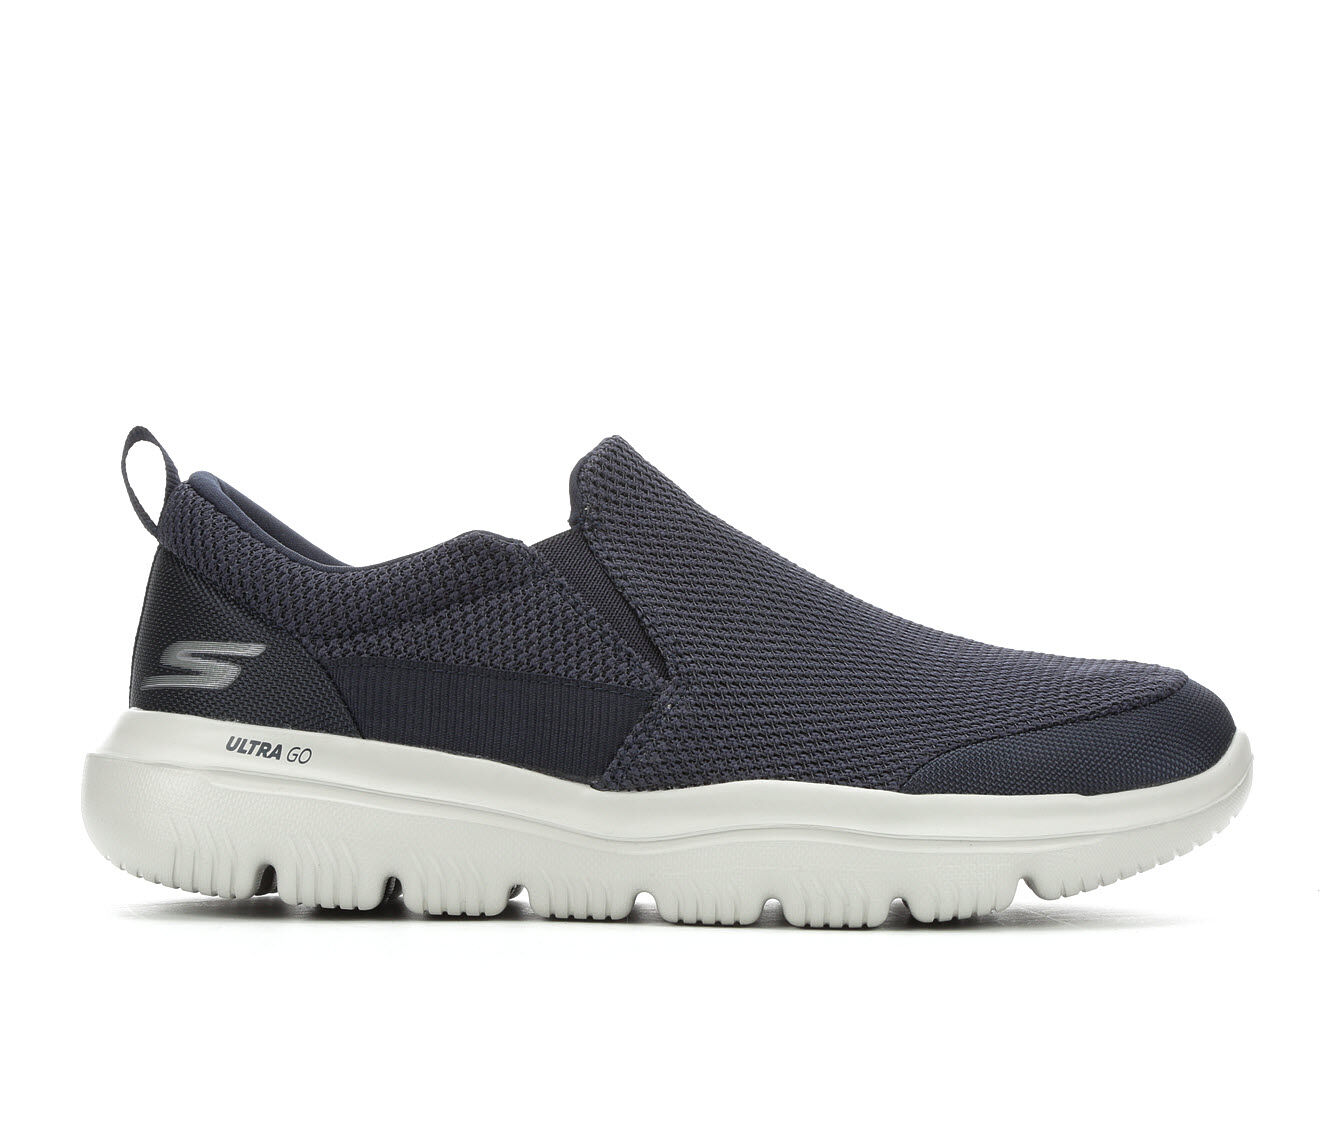 Skechers On The Go Sandals Made WGOga Mat Comfort